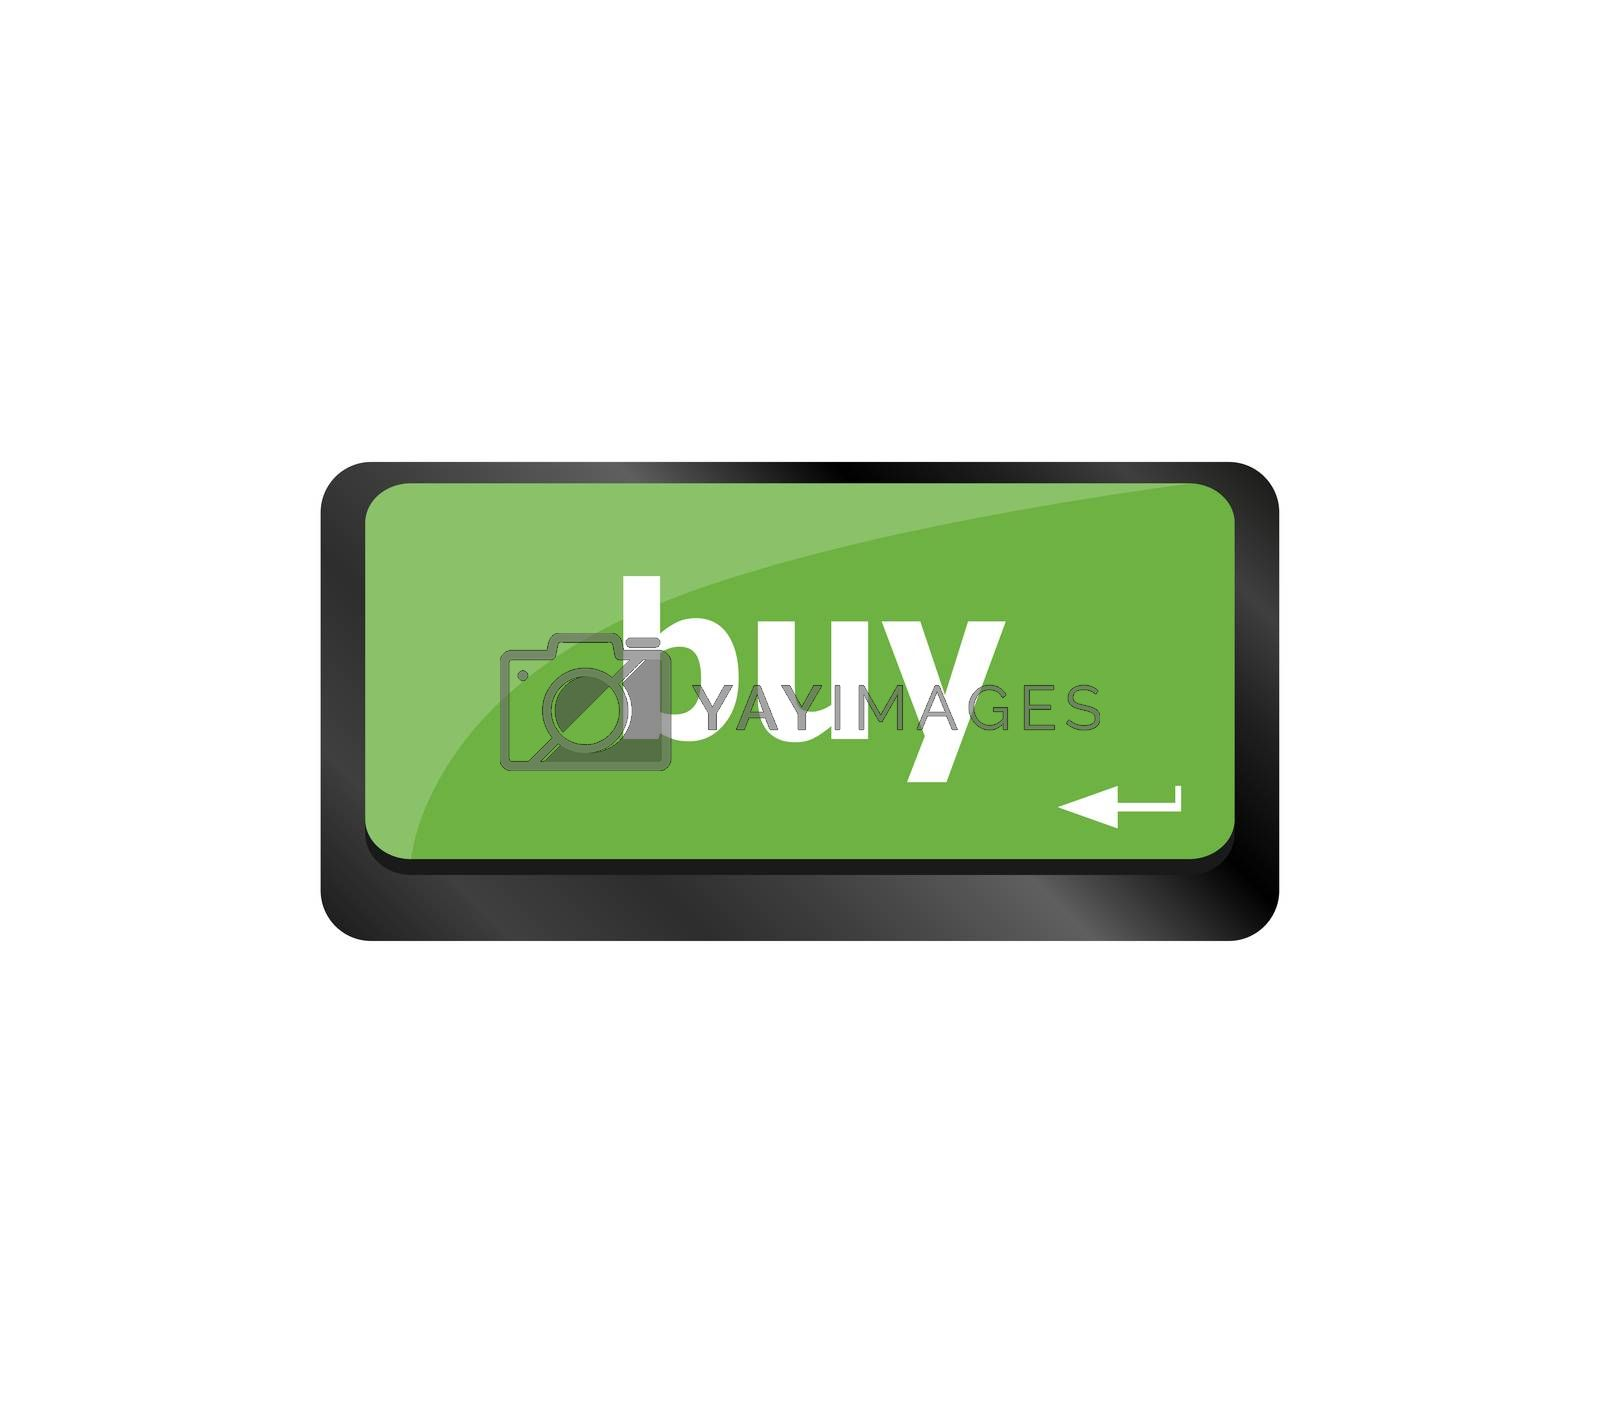 computer keyboard buy now icon - business concept